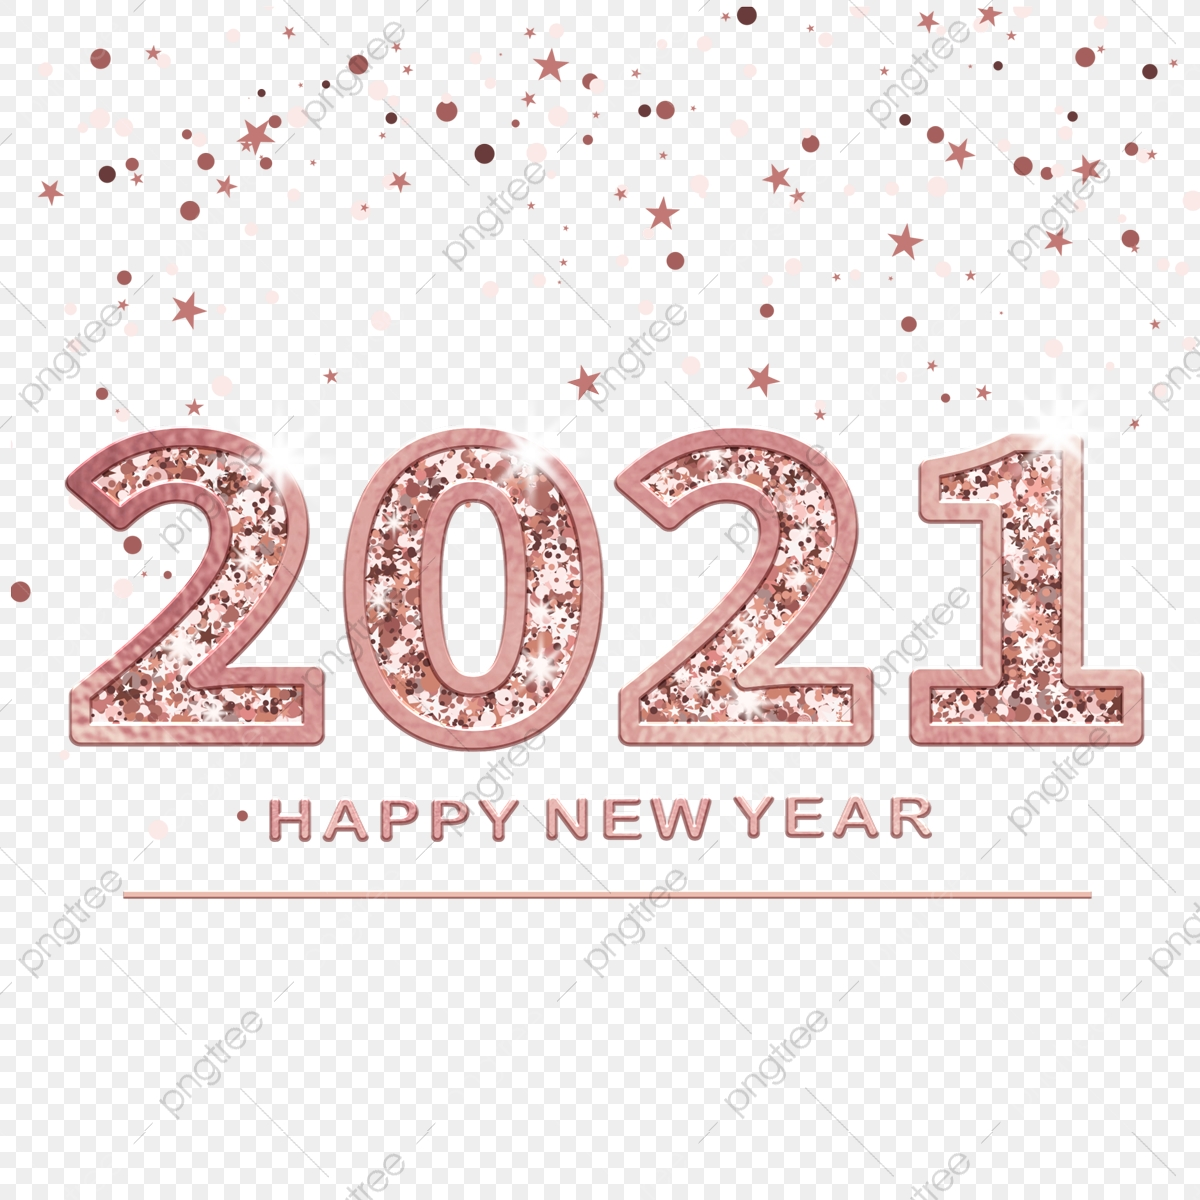 2021 happy new year pink sequins luxury decoration illustration 2021 new year happy new year png transparent clipart image and psd file for free download https pngtree com freepng 2021 happy new year pink sequins luxury decoration illustration 5461498 html